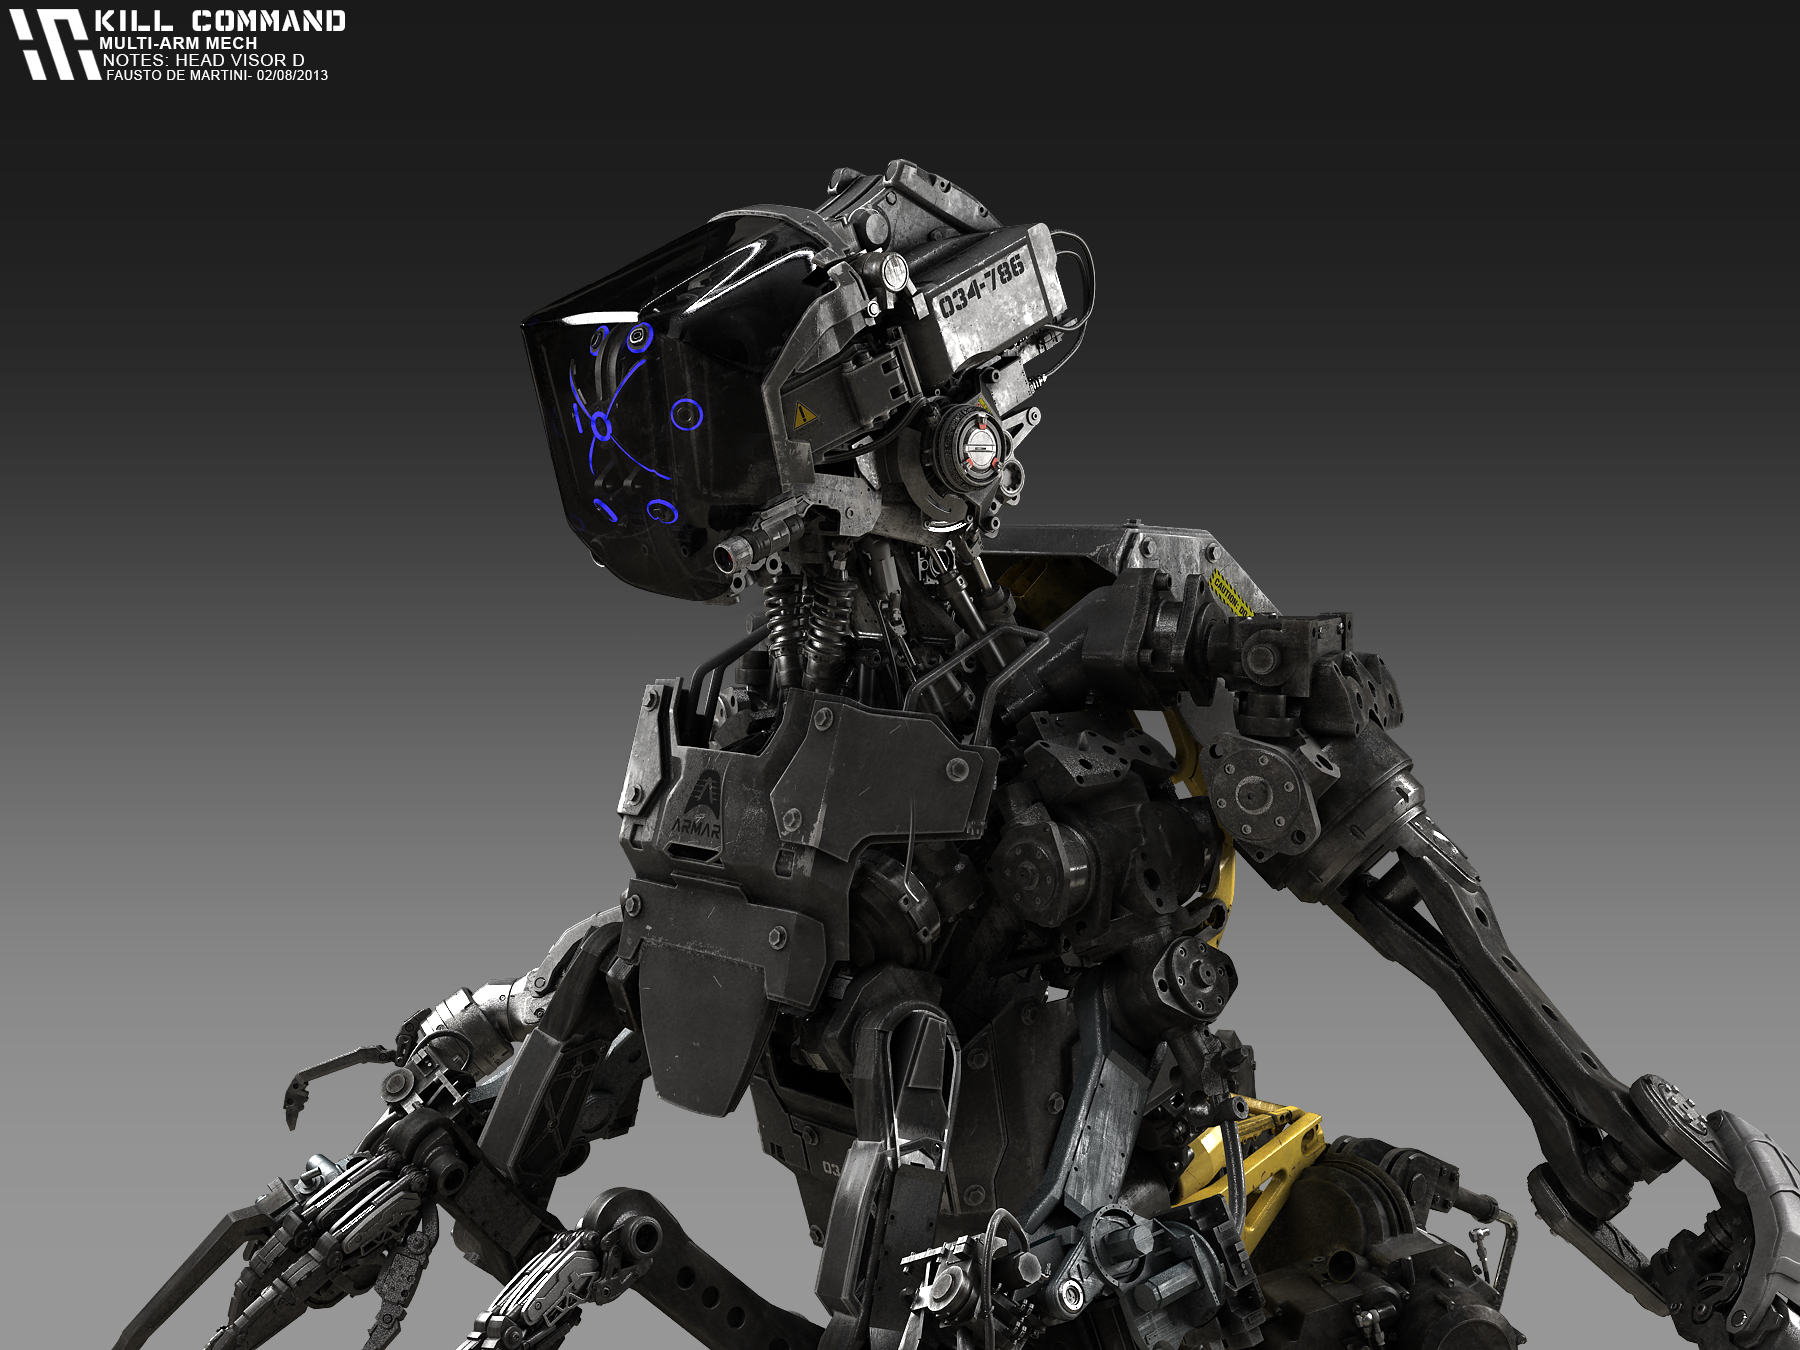 KILLCOMMAND_MultiArms_080213_HeadVisorD_03_FDM.jpg